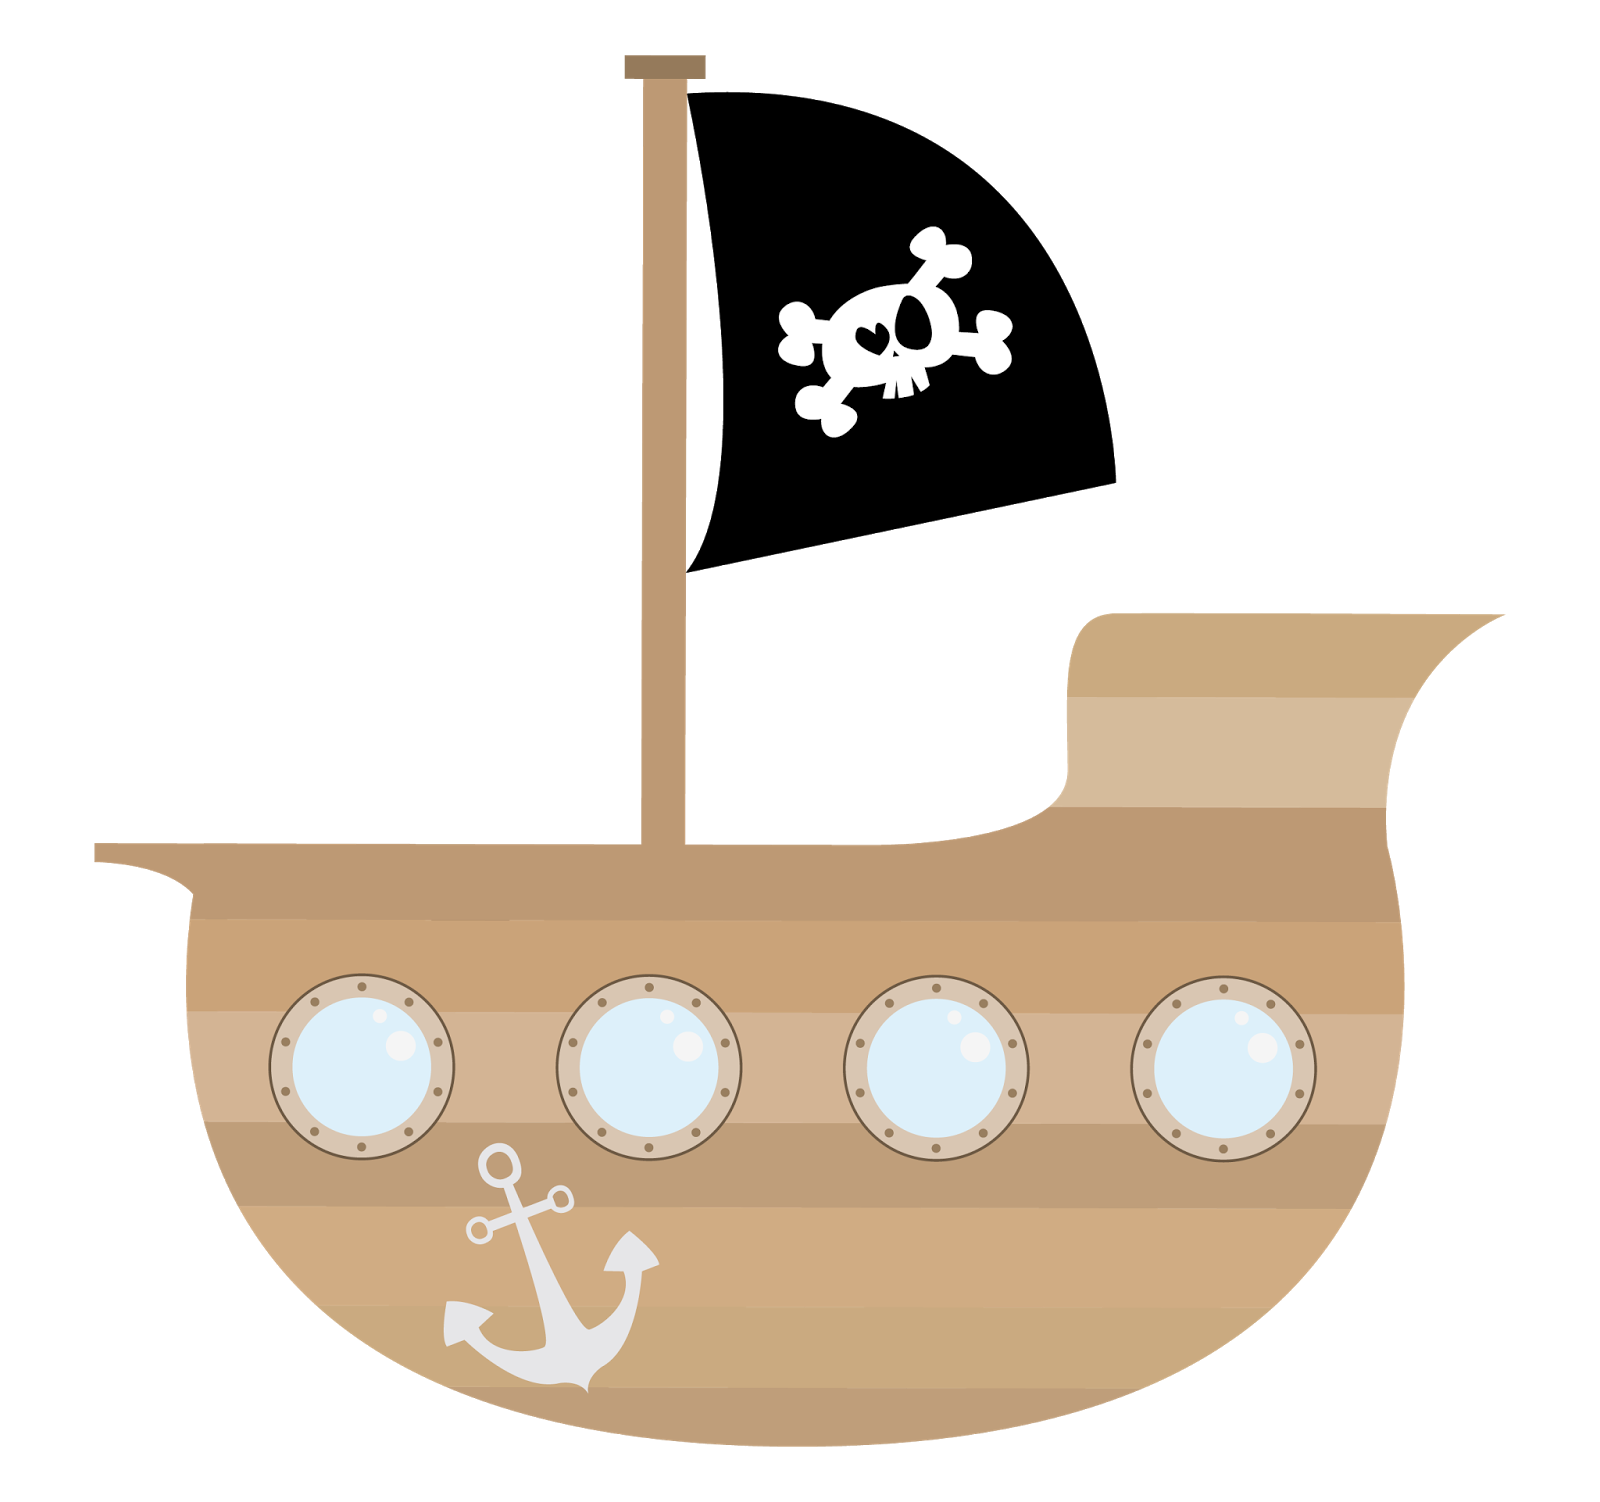 Pirates Of The Caribbean clipart pirate ship 1600 png png Peter+Pan+Clip+Art Pirate+Ship